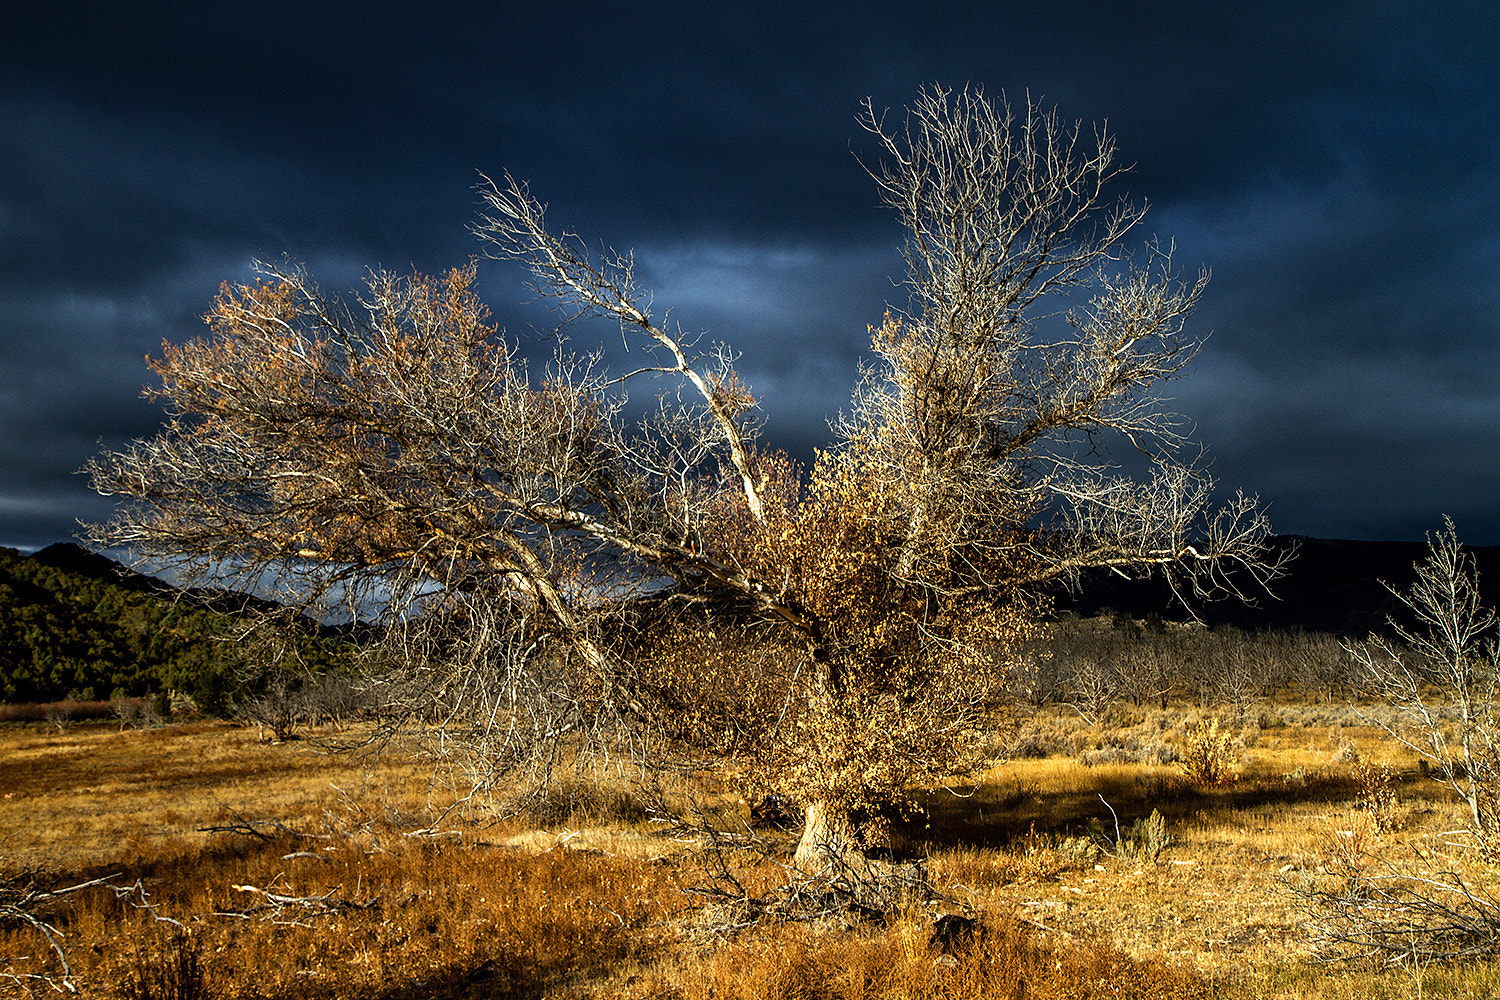 Photograph Dramatic Tree Idaho by For 91 Days on 500px